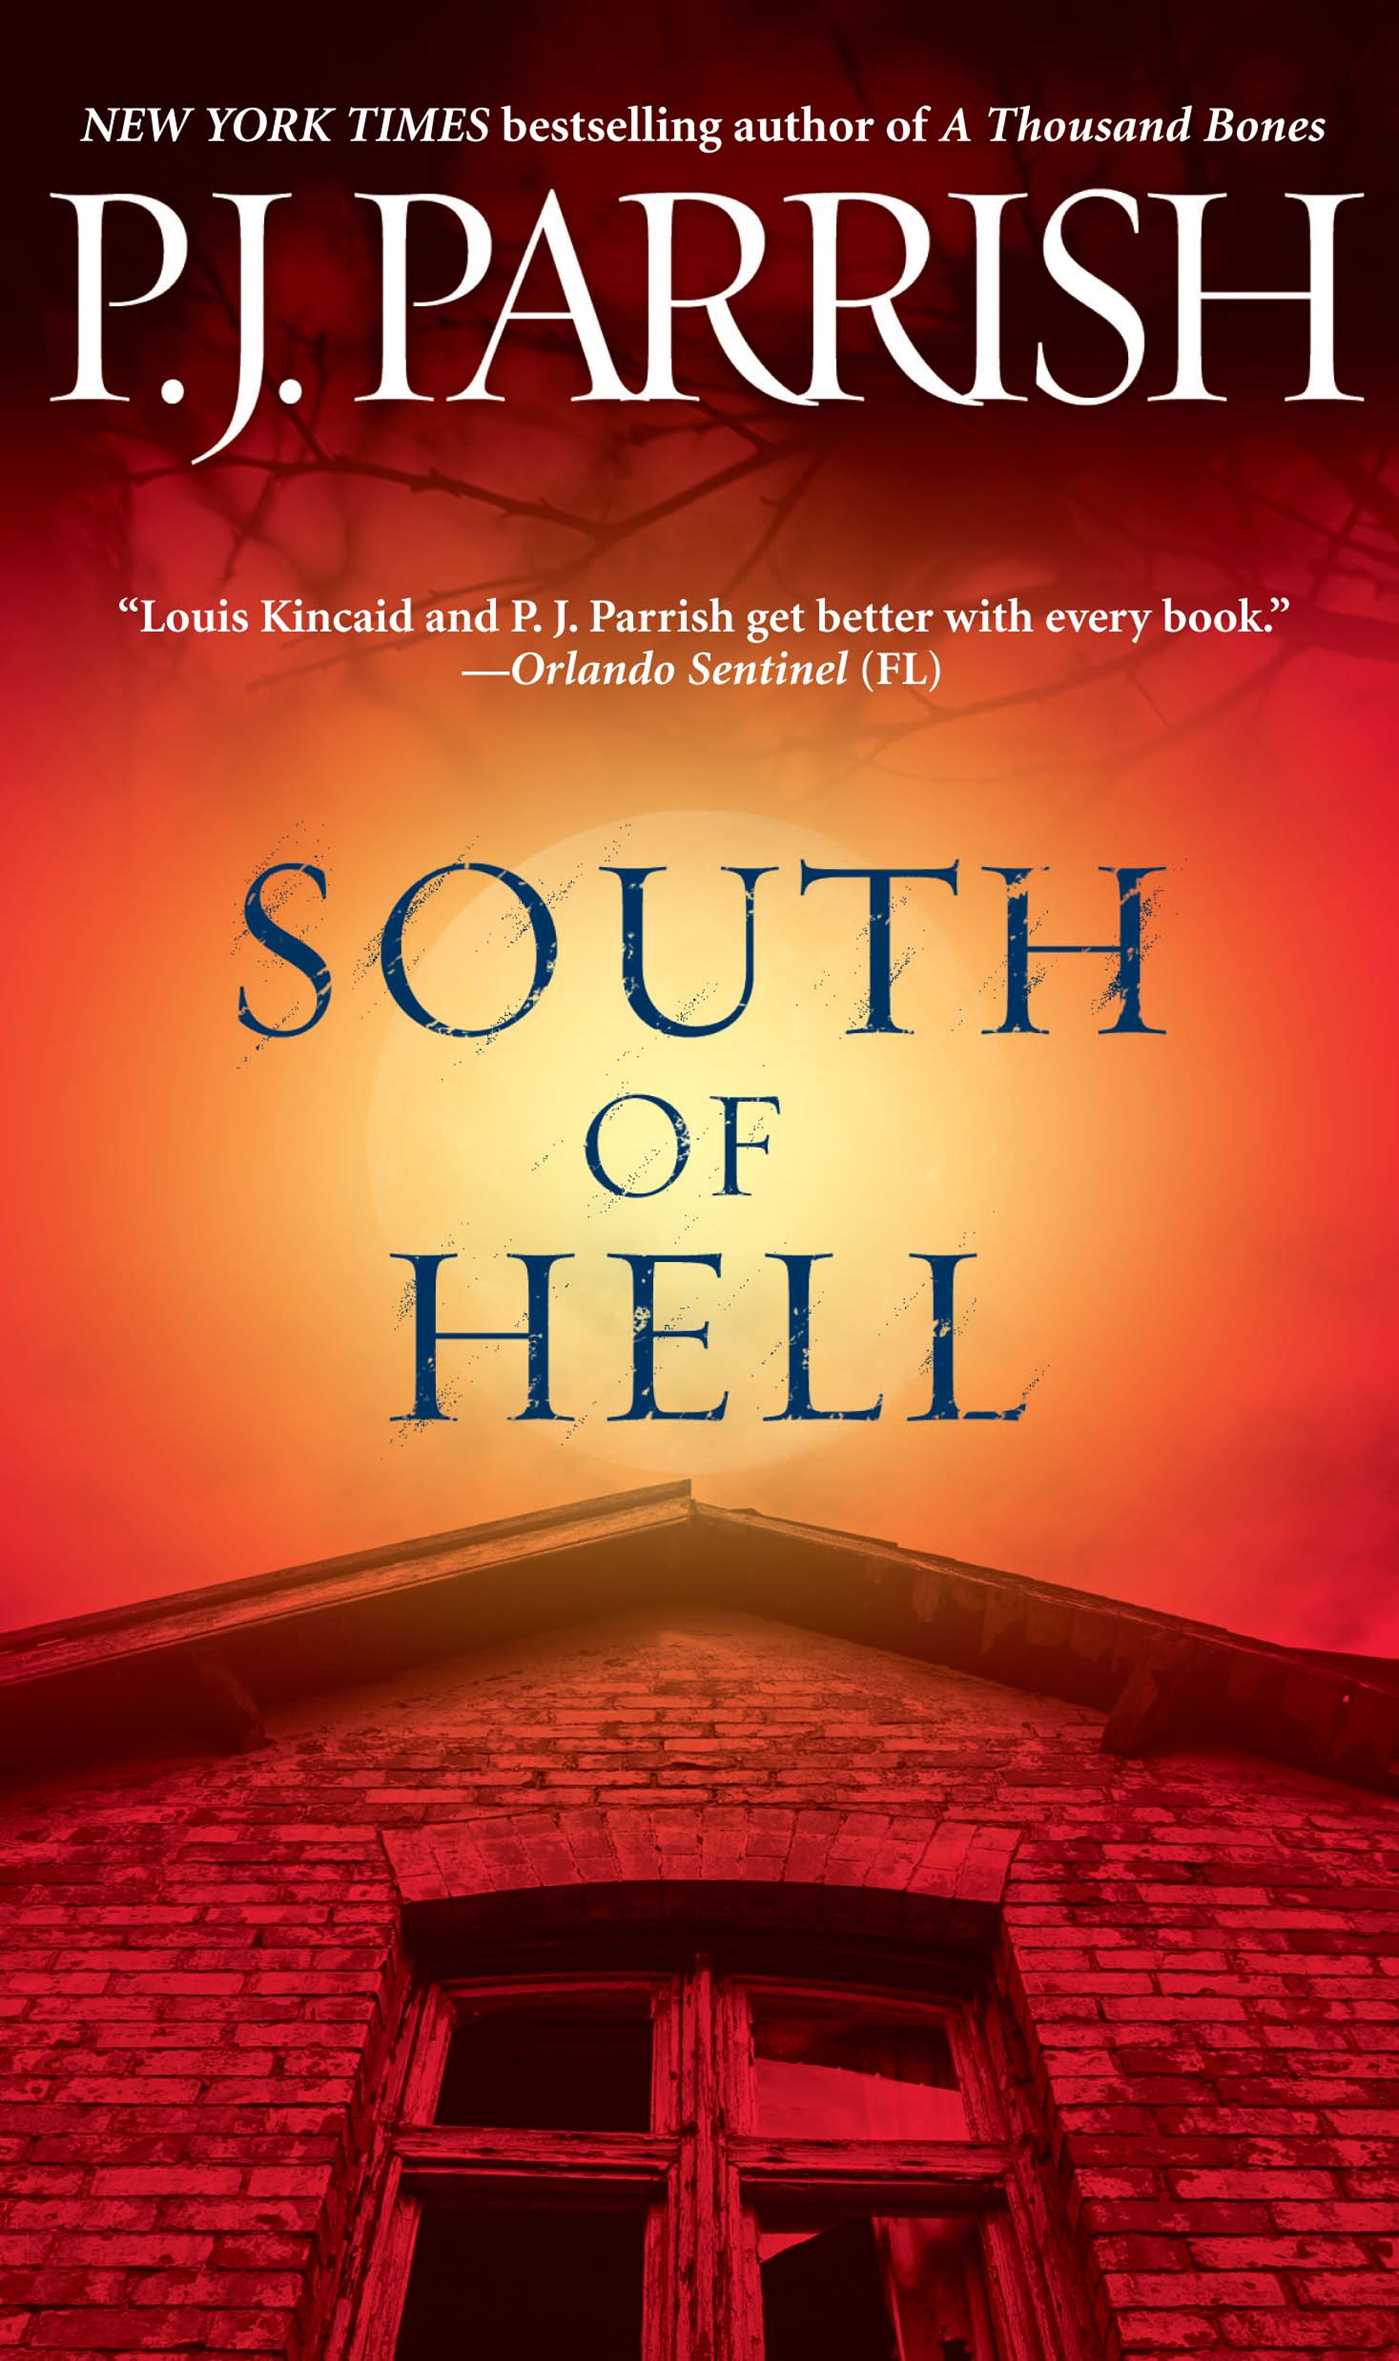 South-of-hell-9781416579502_hr